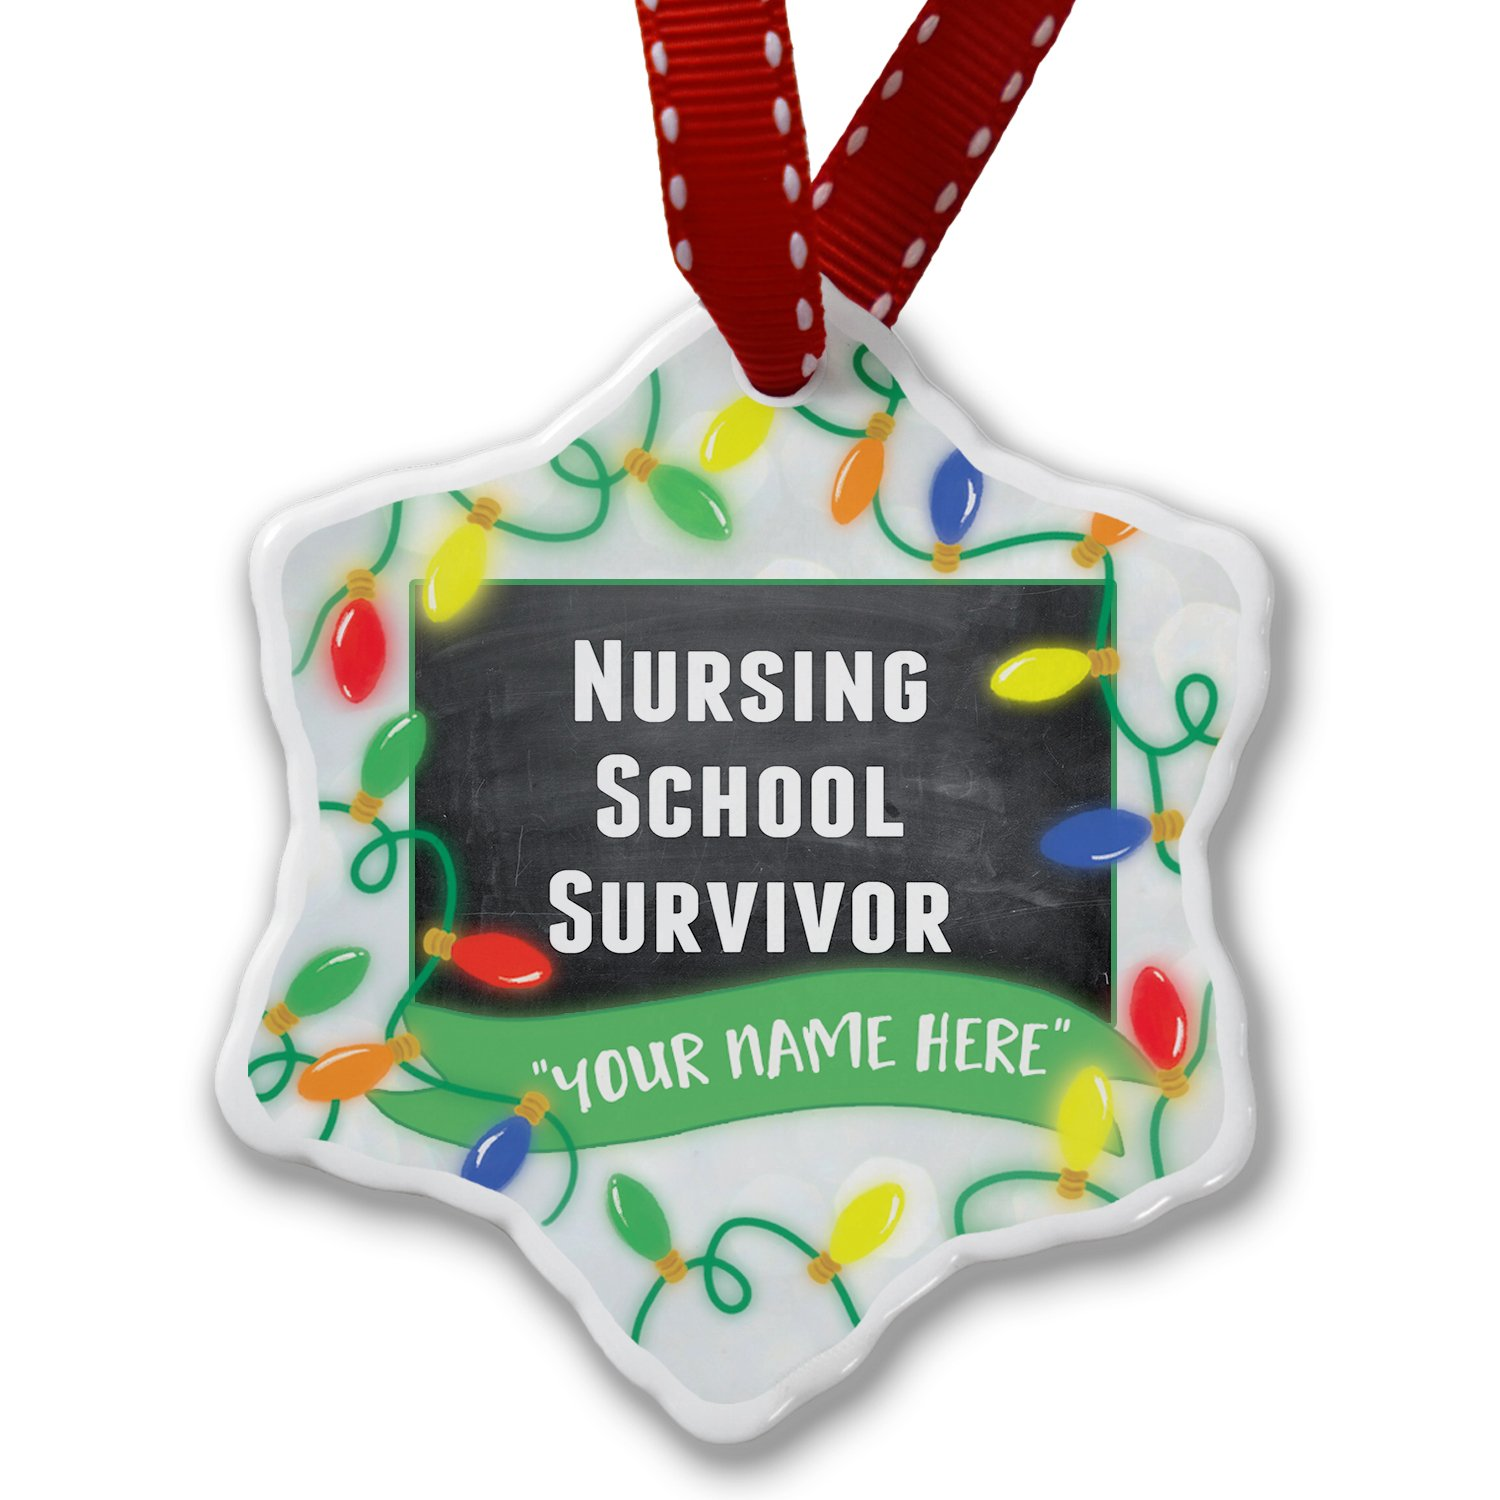 Personalized Name Christmas Ornament, Nursing School Survivor NEONBLOND